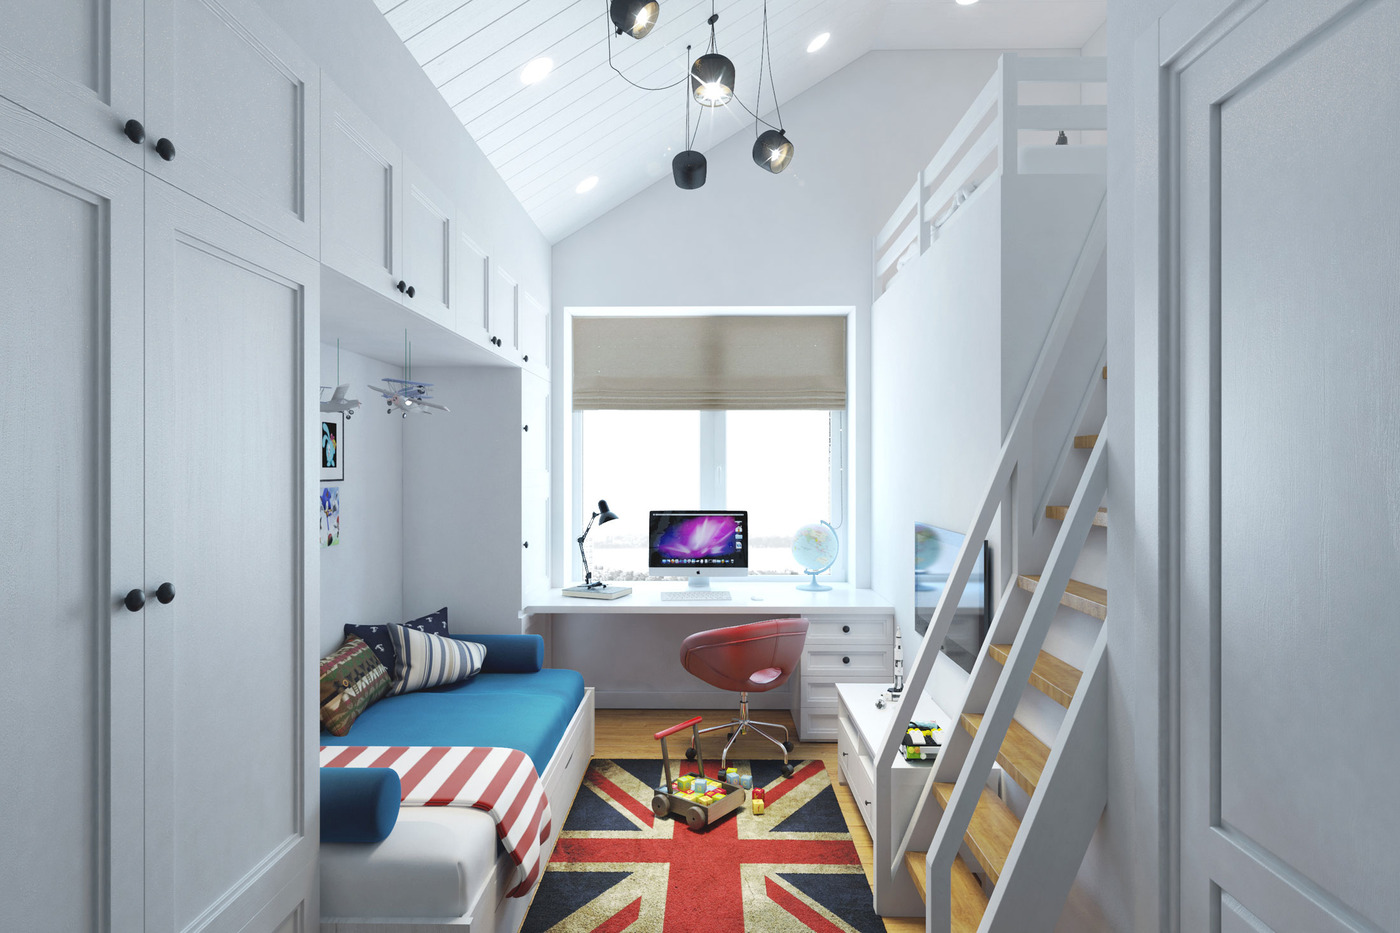 Small Space House Design Small Teenage Room Design With A Second Floor Sleeping